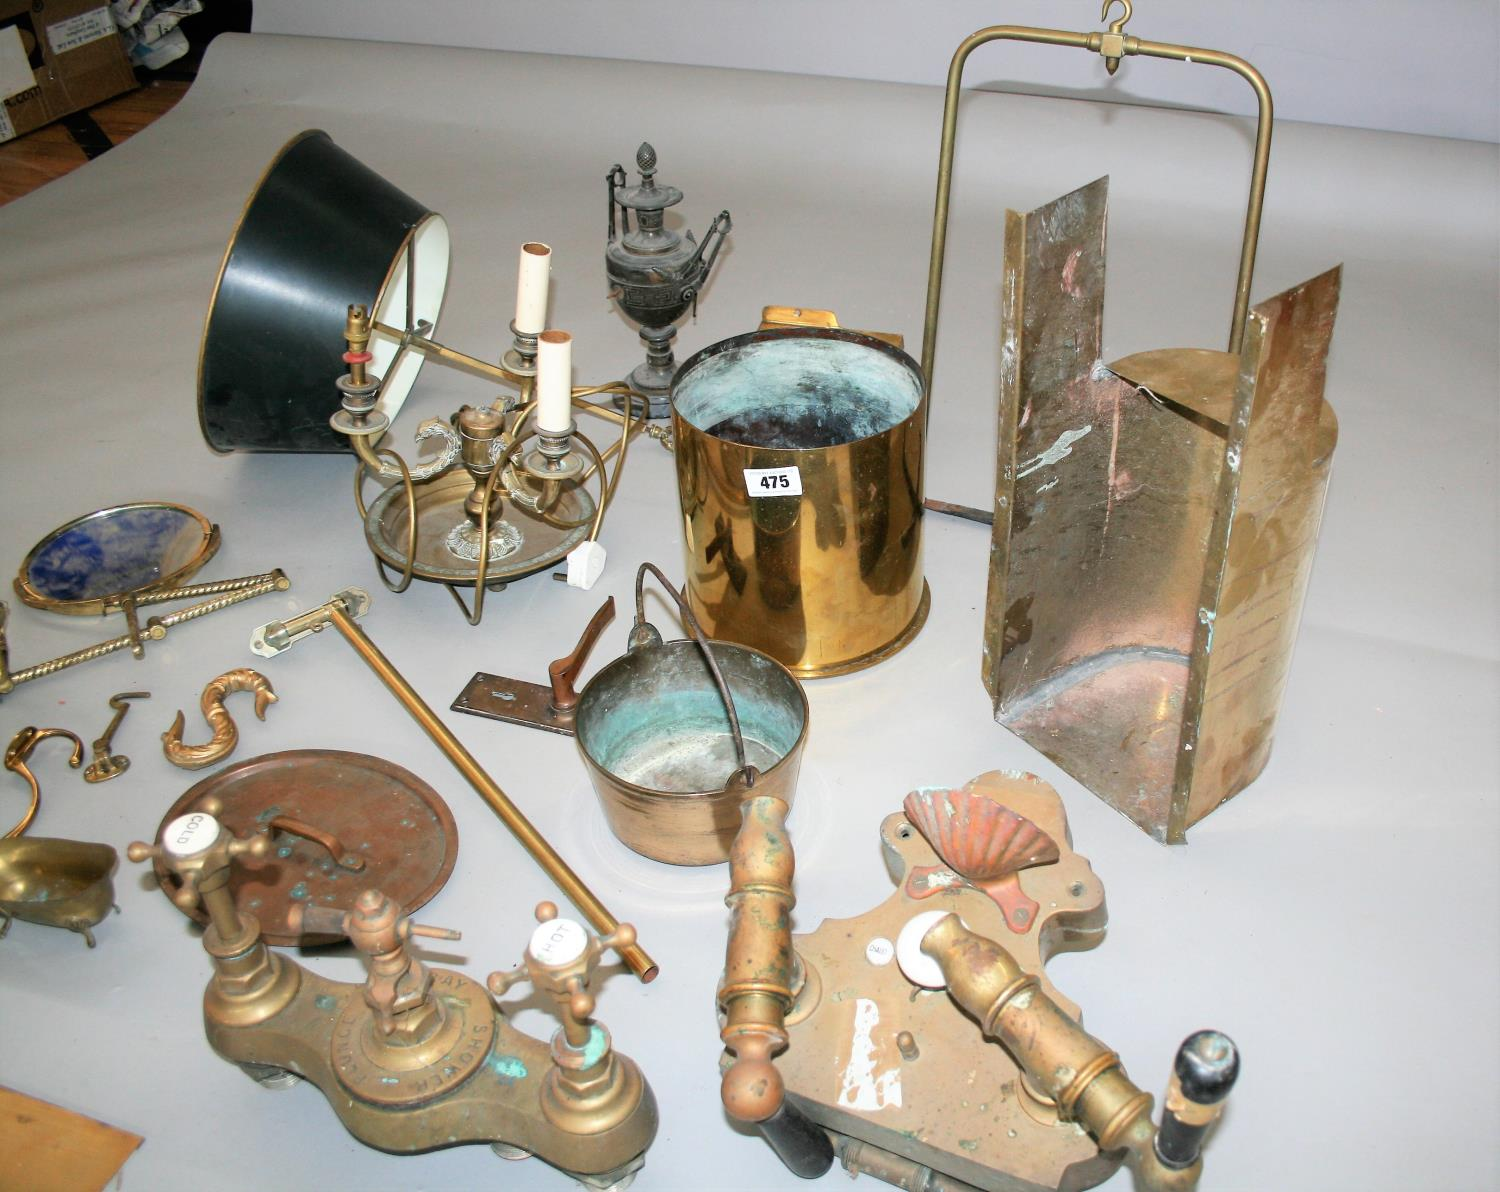 Collection of quality antique brass items, lamp, private sign etc - Image 3 of 4